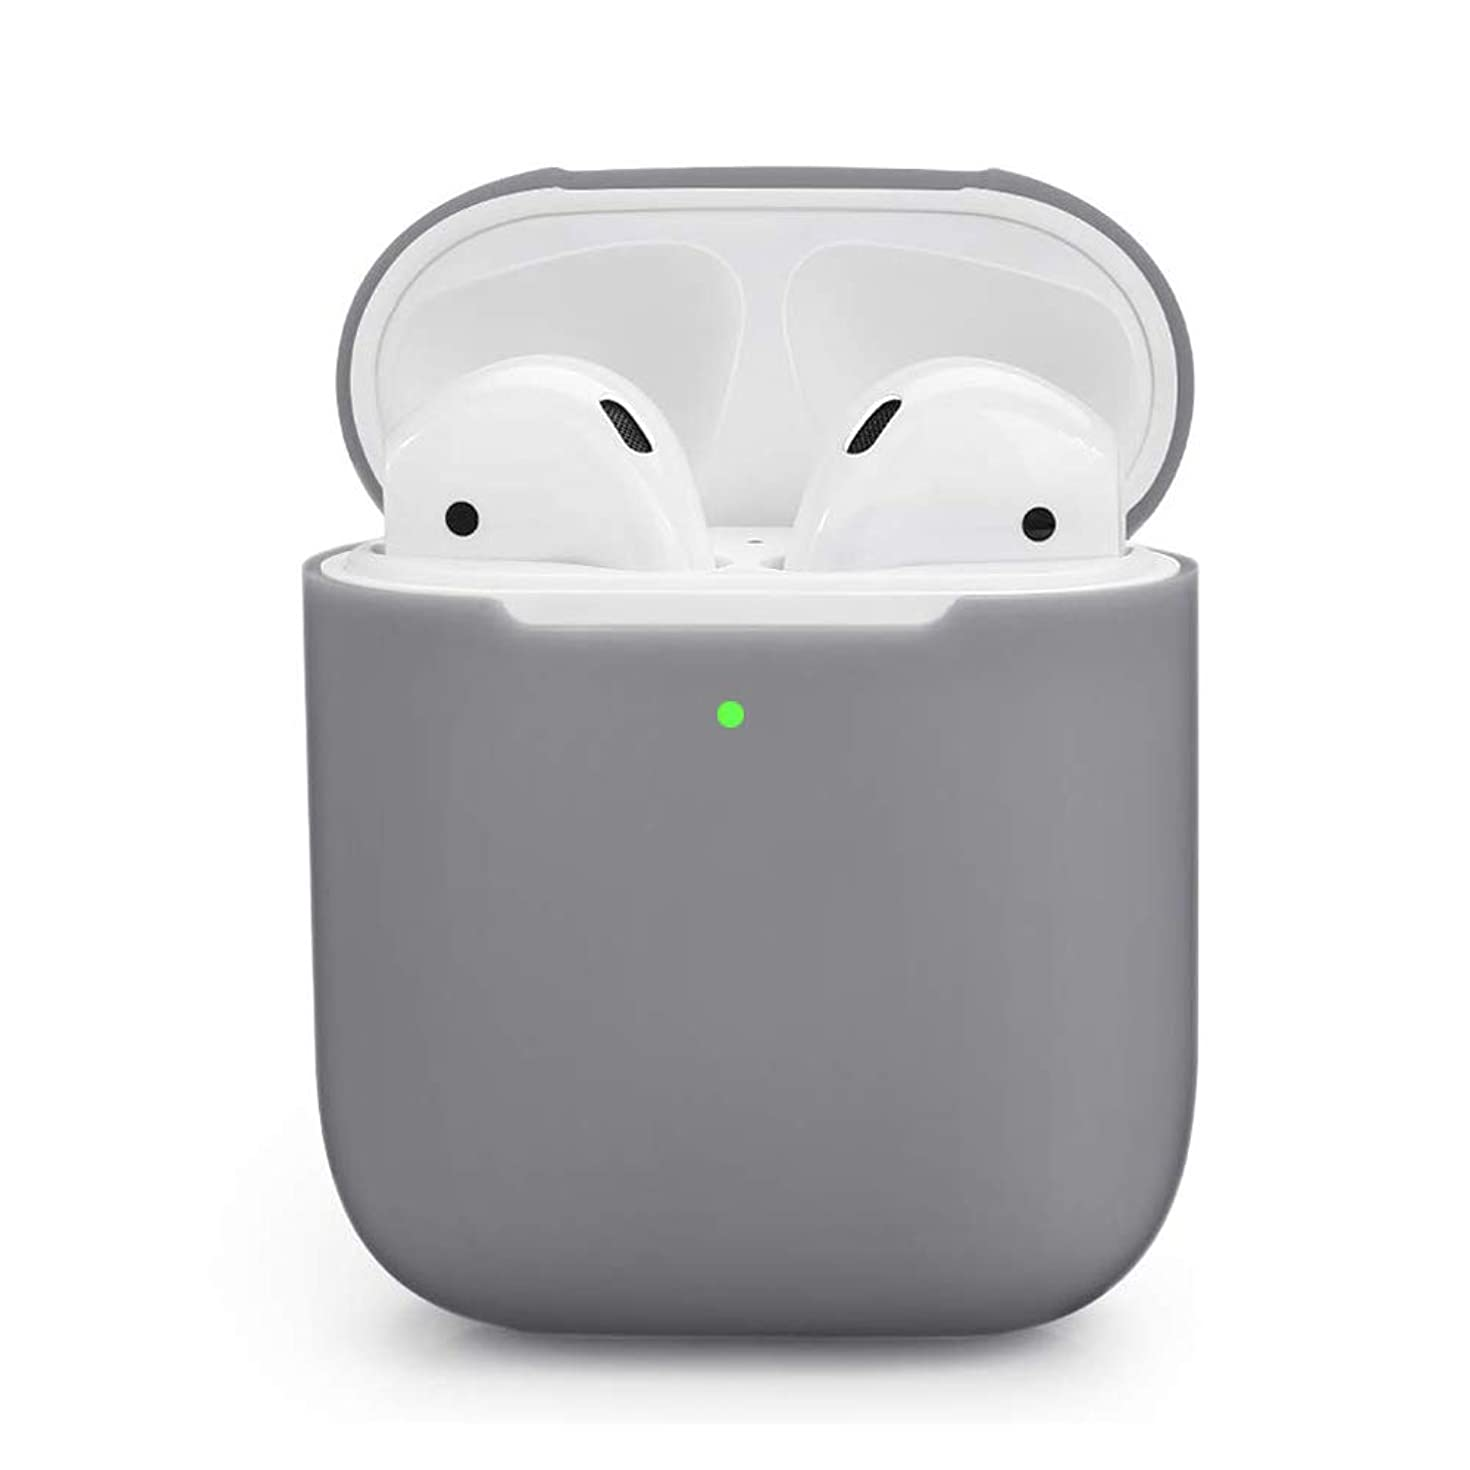 ZALU Compatible for AirPods Case, 0.8mm Ultra-Thin Version, Premium Protective Silicone Cover Skin for AirPods Charging Case 2 & 1 [Front LED Visible] [Wireless Rechargeable](Grey)